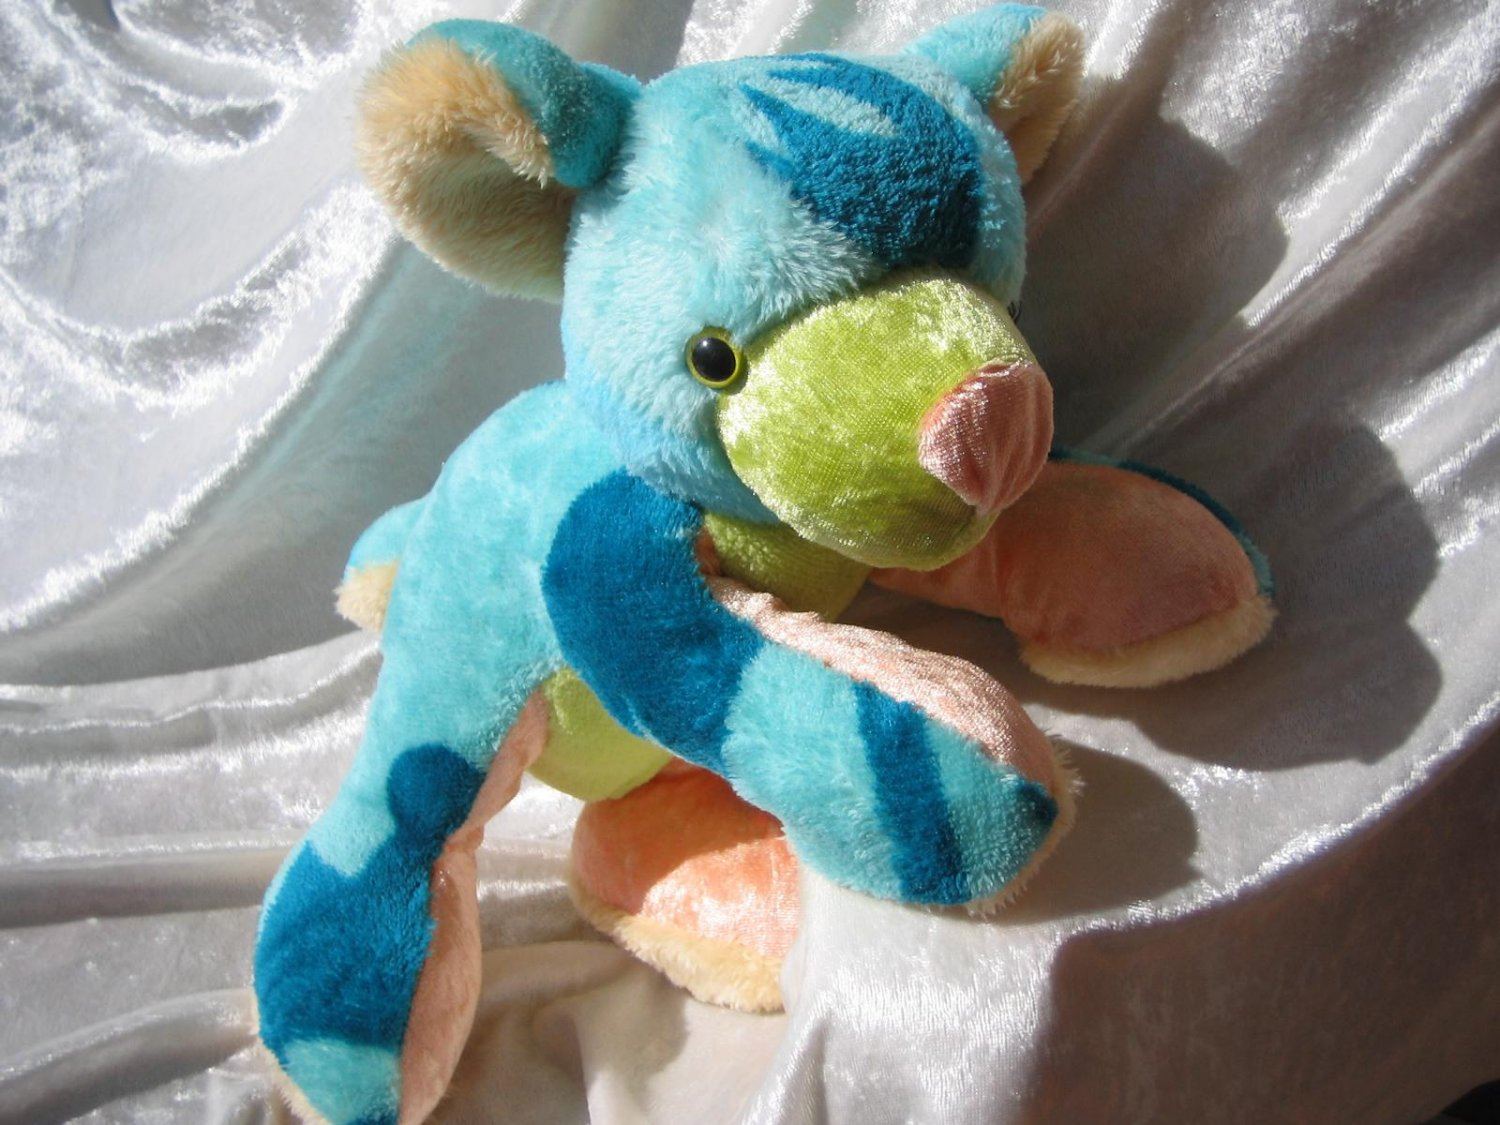 AQUA NAUTILUS Teddy Baby Shower Turquoise Green Maritim luxury bear decor handmade soft toy nursery